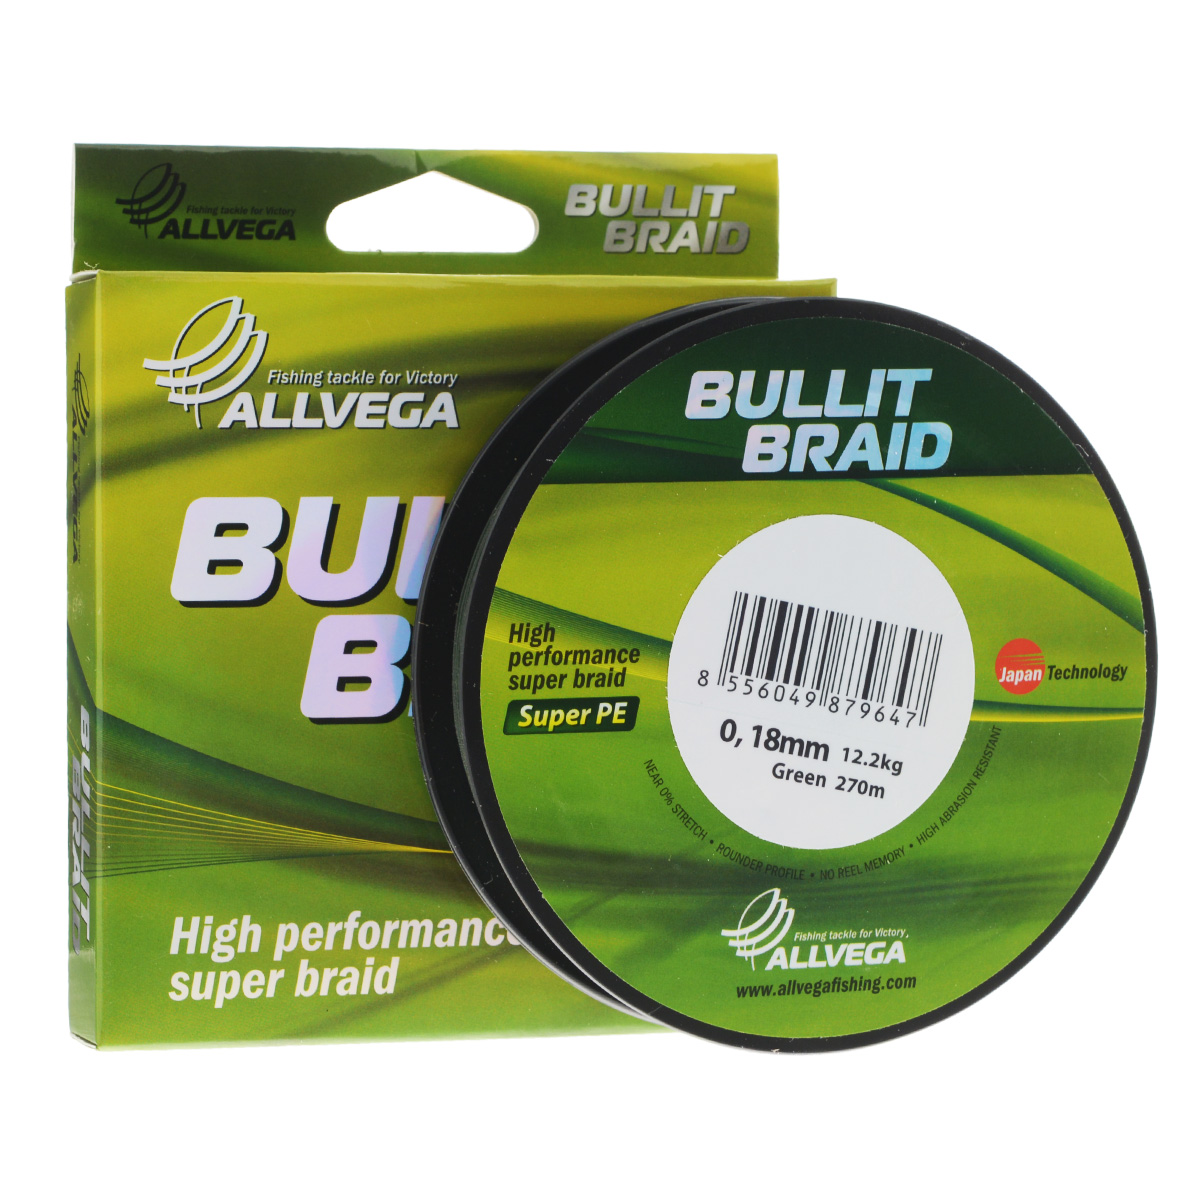 Леска плетеная ALLVEGA Bullit Braid 270м 0,18мм 12,2кг (темно-зеленая)